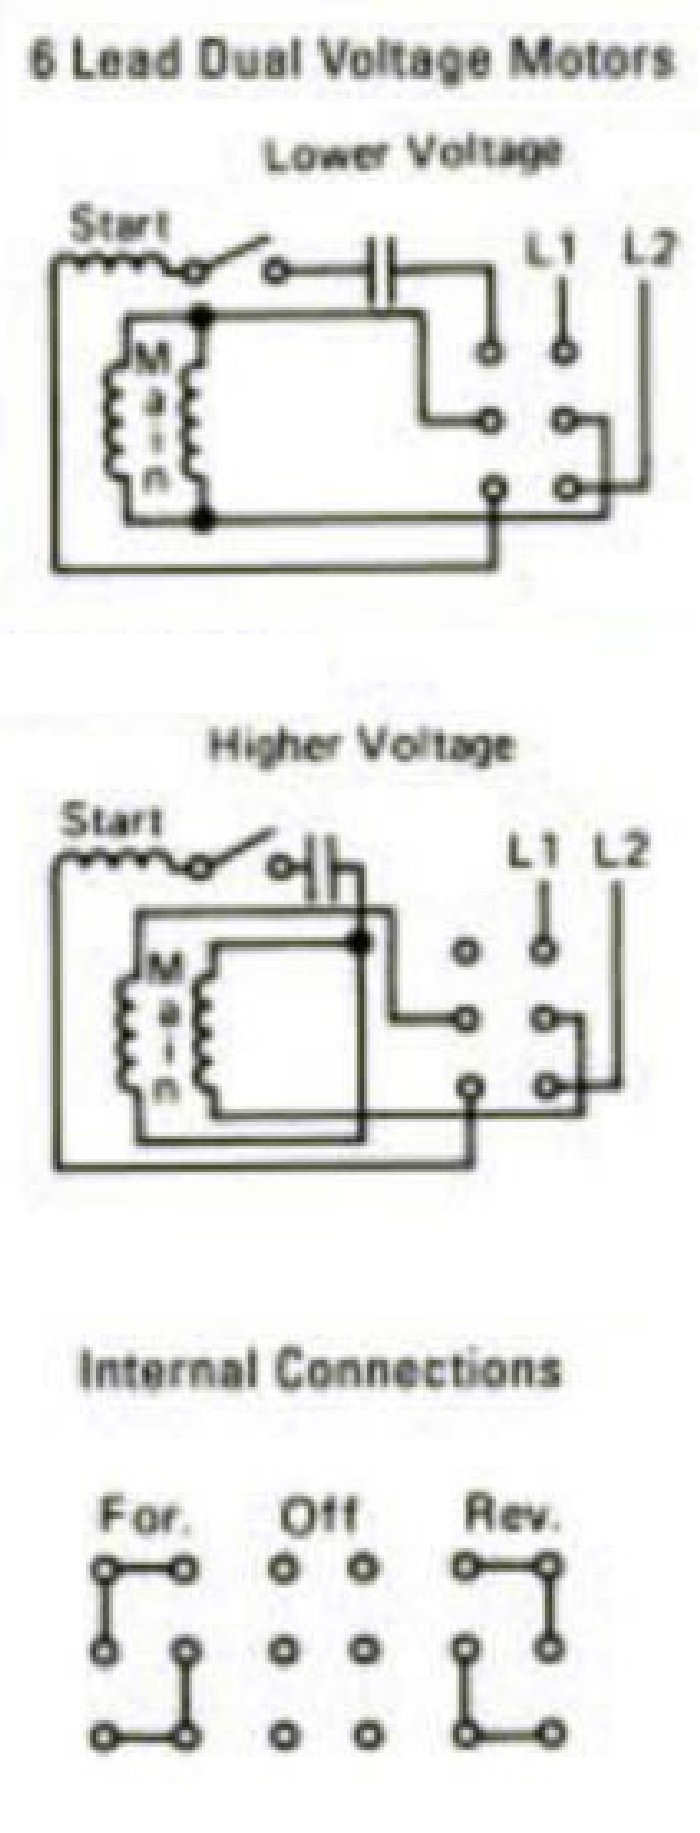 bremas boat lift switch wiring diagram  | Rotary Switch Wiring Diagram